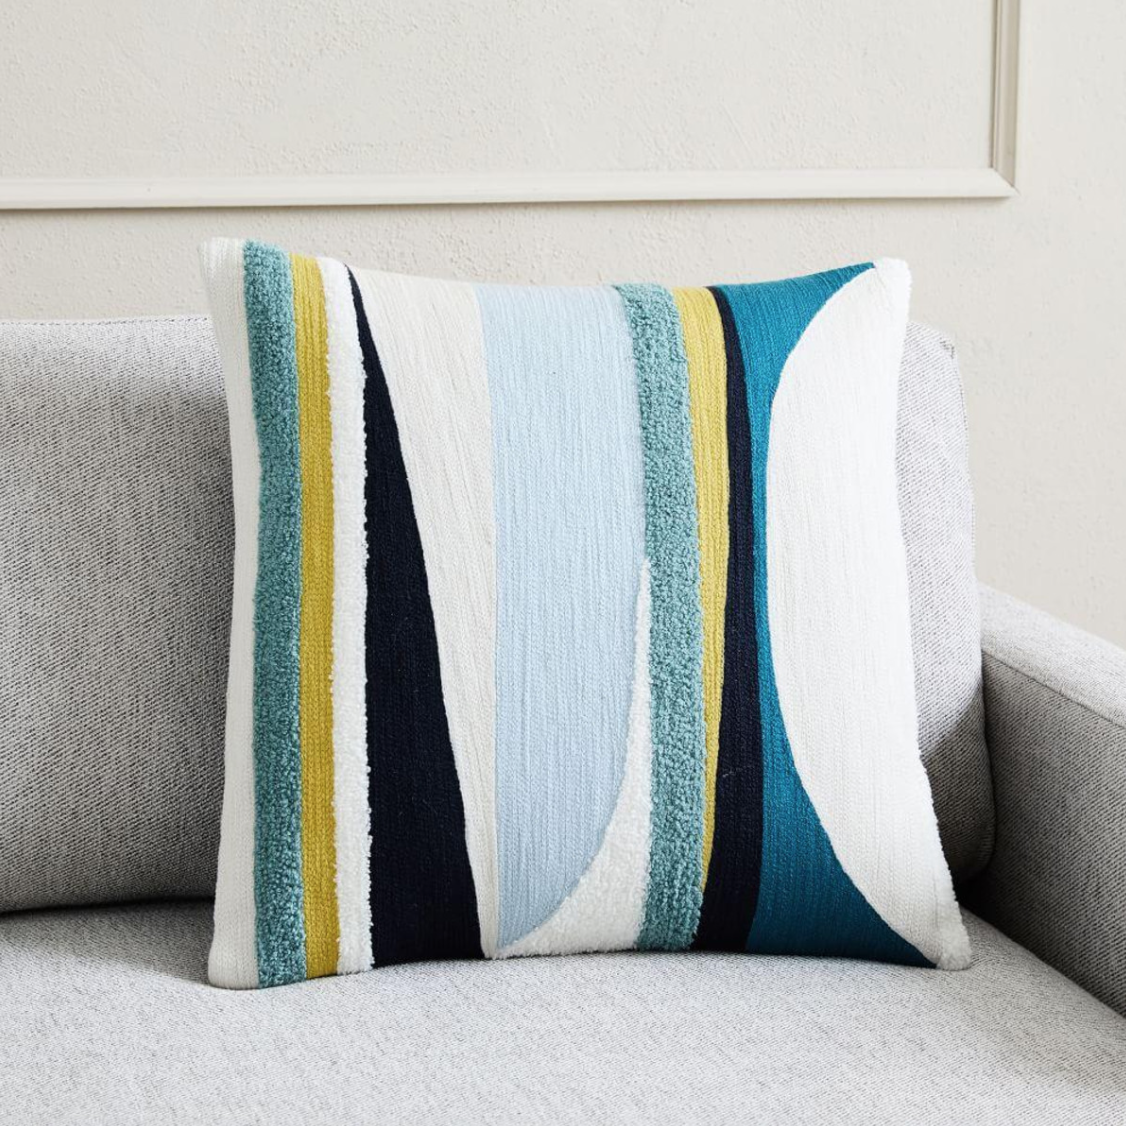 Cushion by Wallace Sewell for WestElm, £29